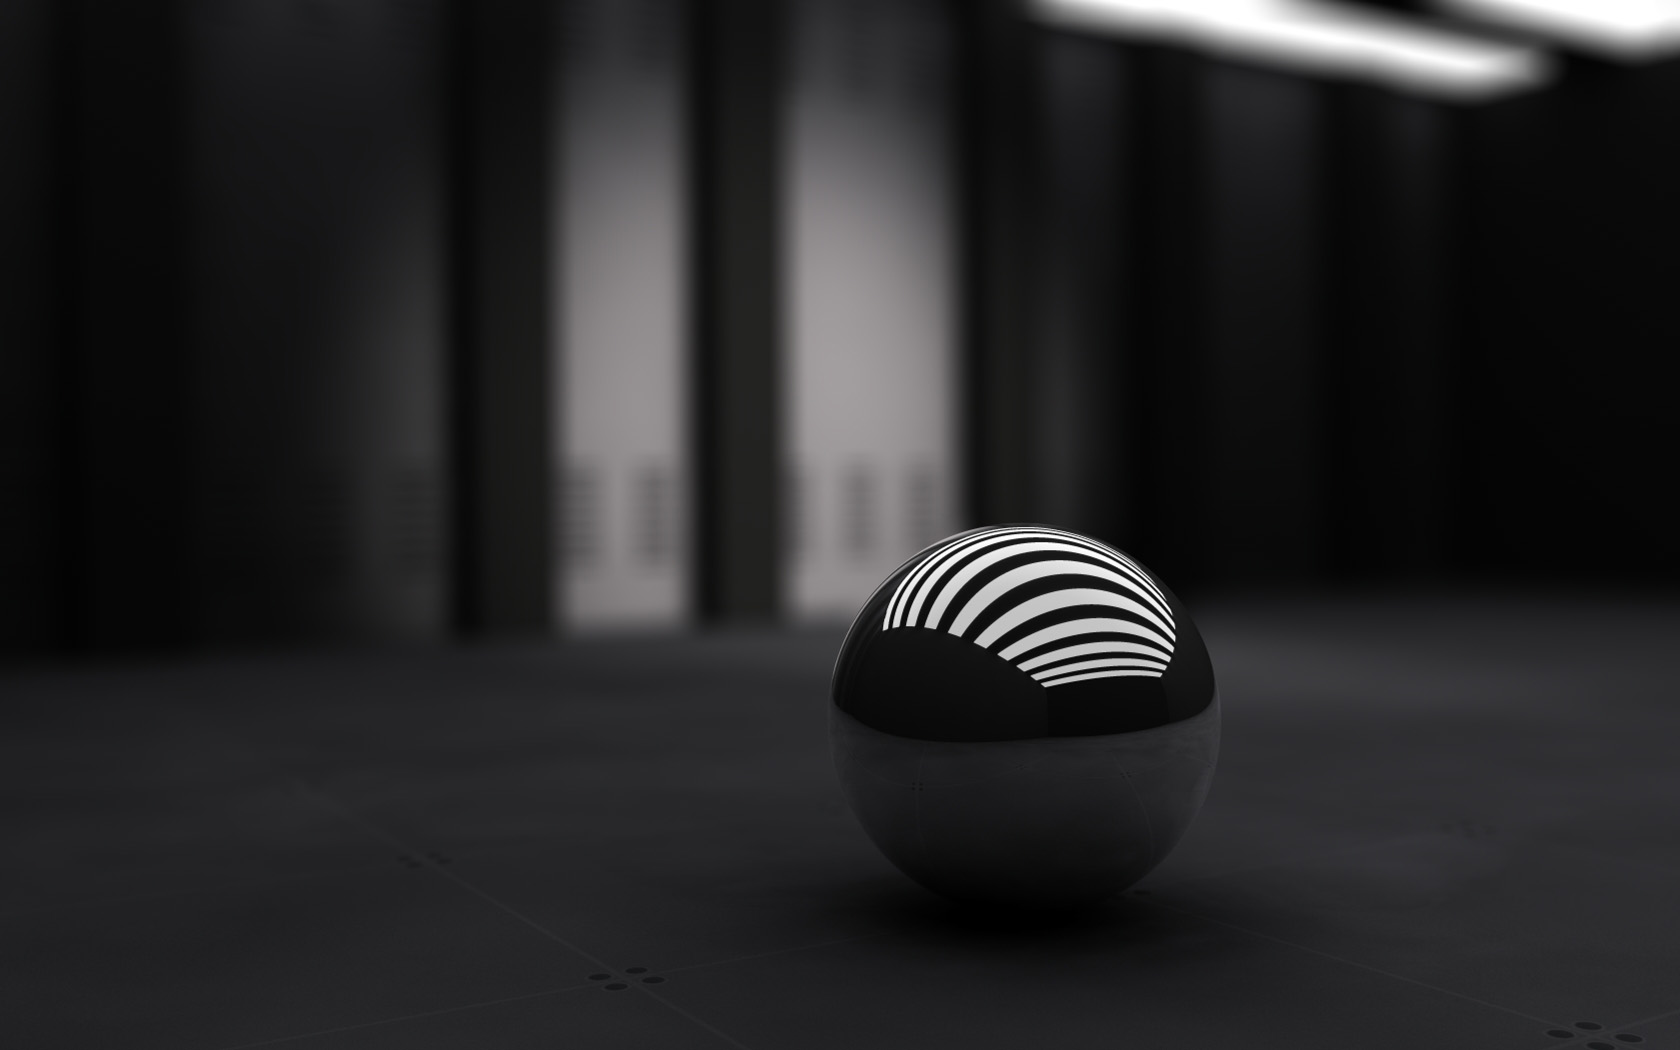 Photo:  1680x1050 Wallpaper 3D black ball